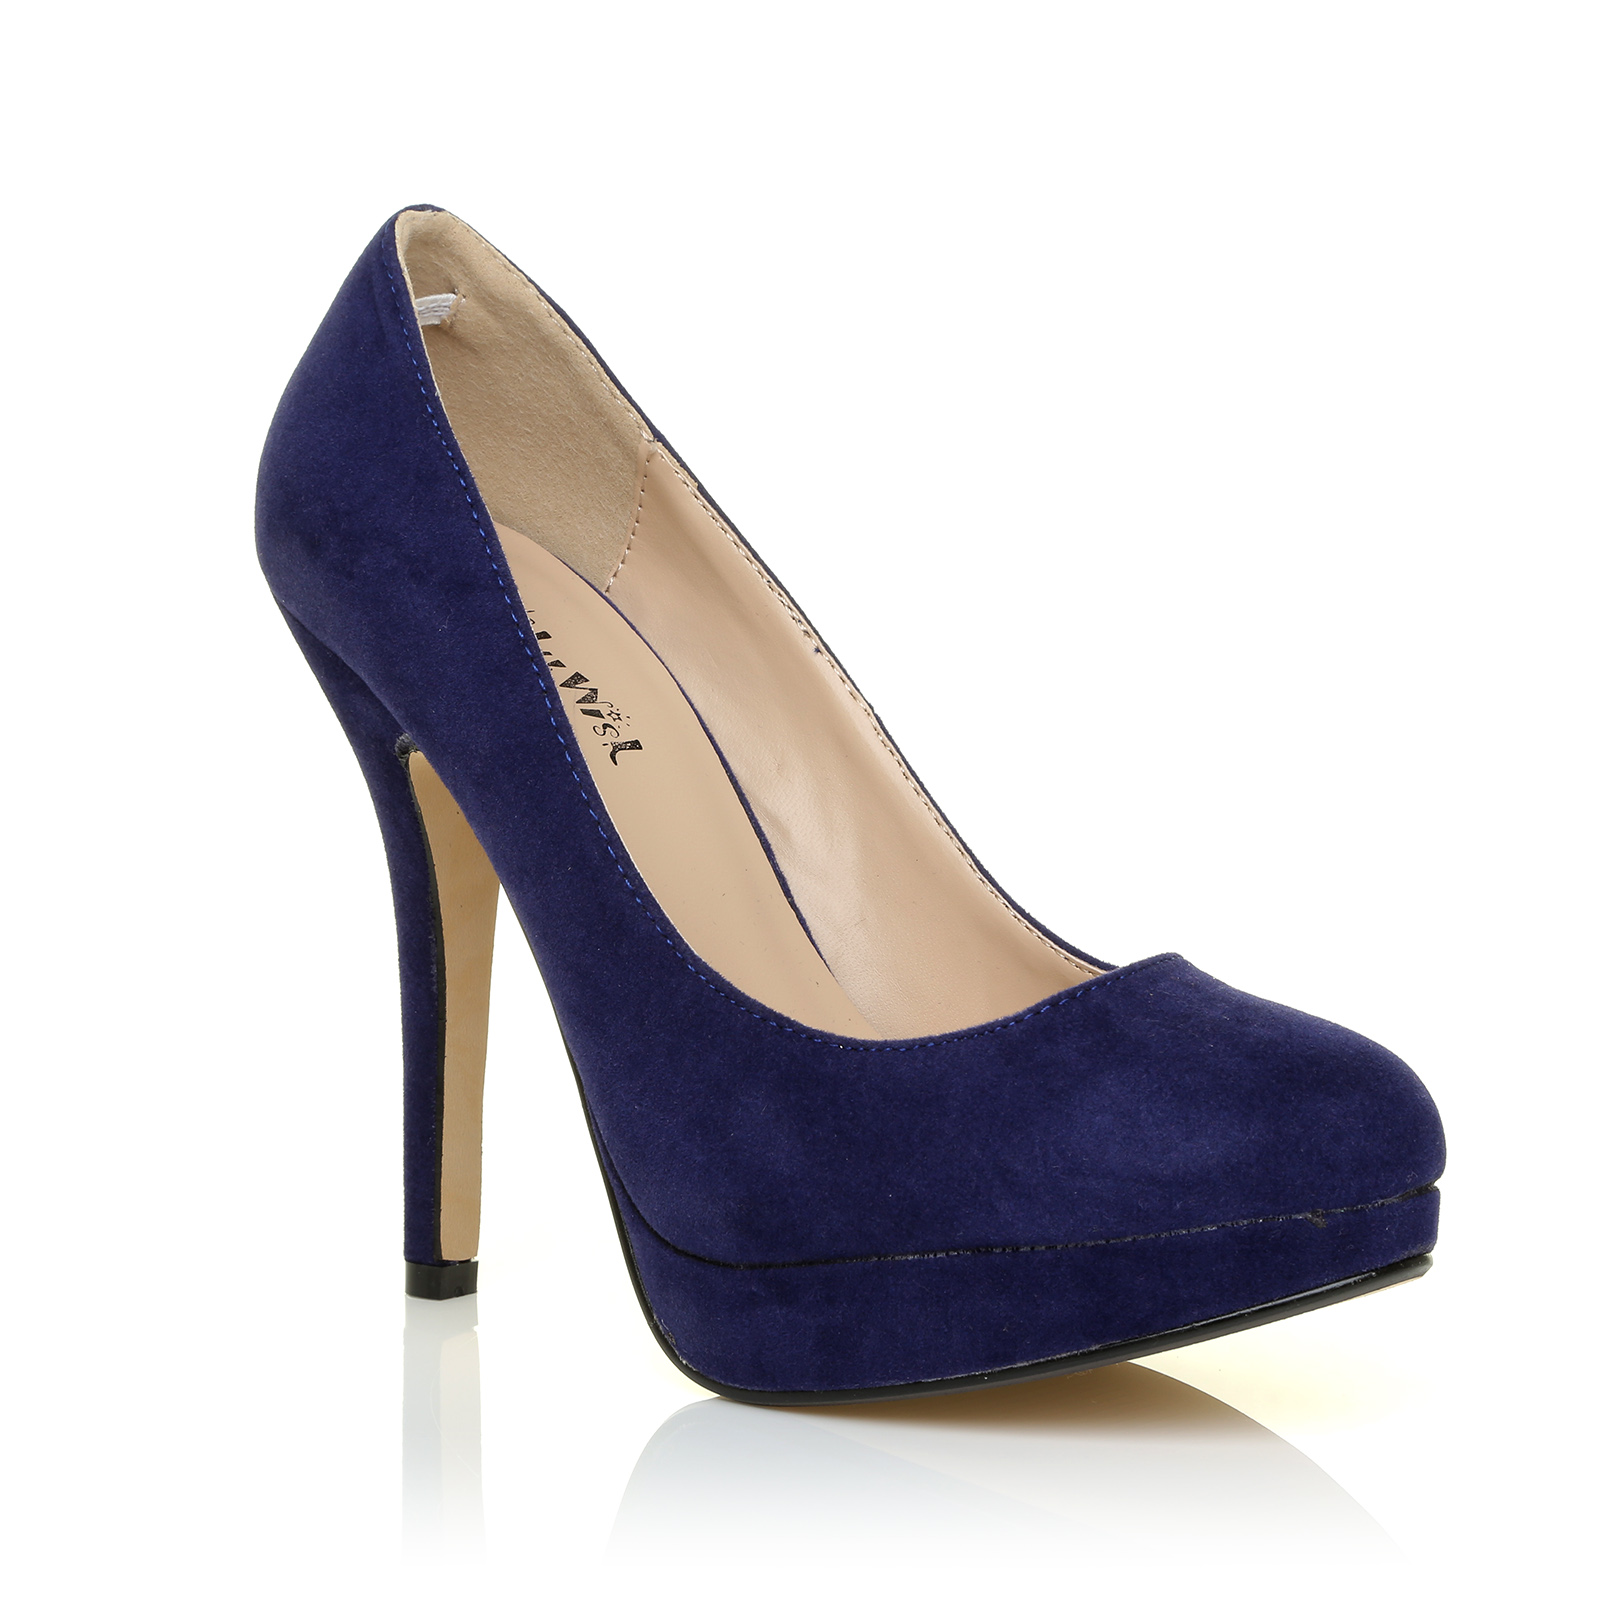 We have over petite size styles to choose. We promise the most beautifully made, fashion forward small shoes you can find anywhere for small feet. We offer worldwide delivery of fashion styles under mm in length including UK size 13, 1, 2, and 3, European sizes 32, .